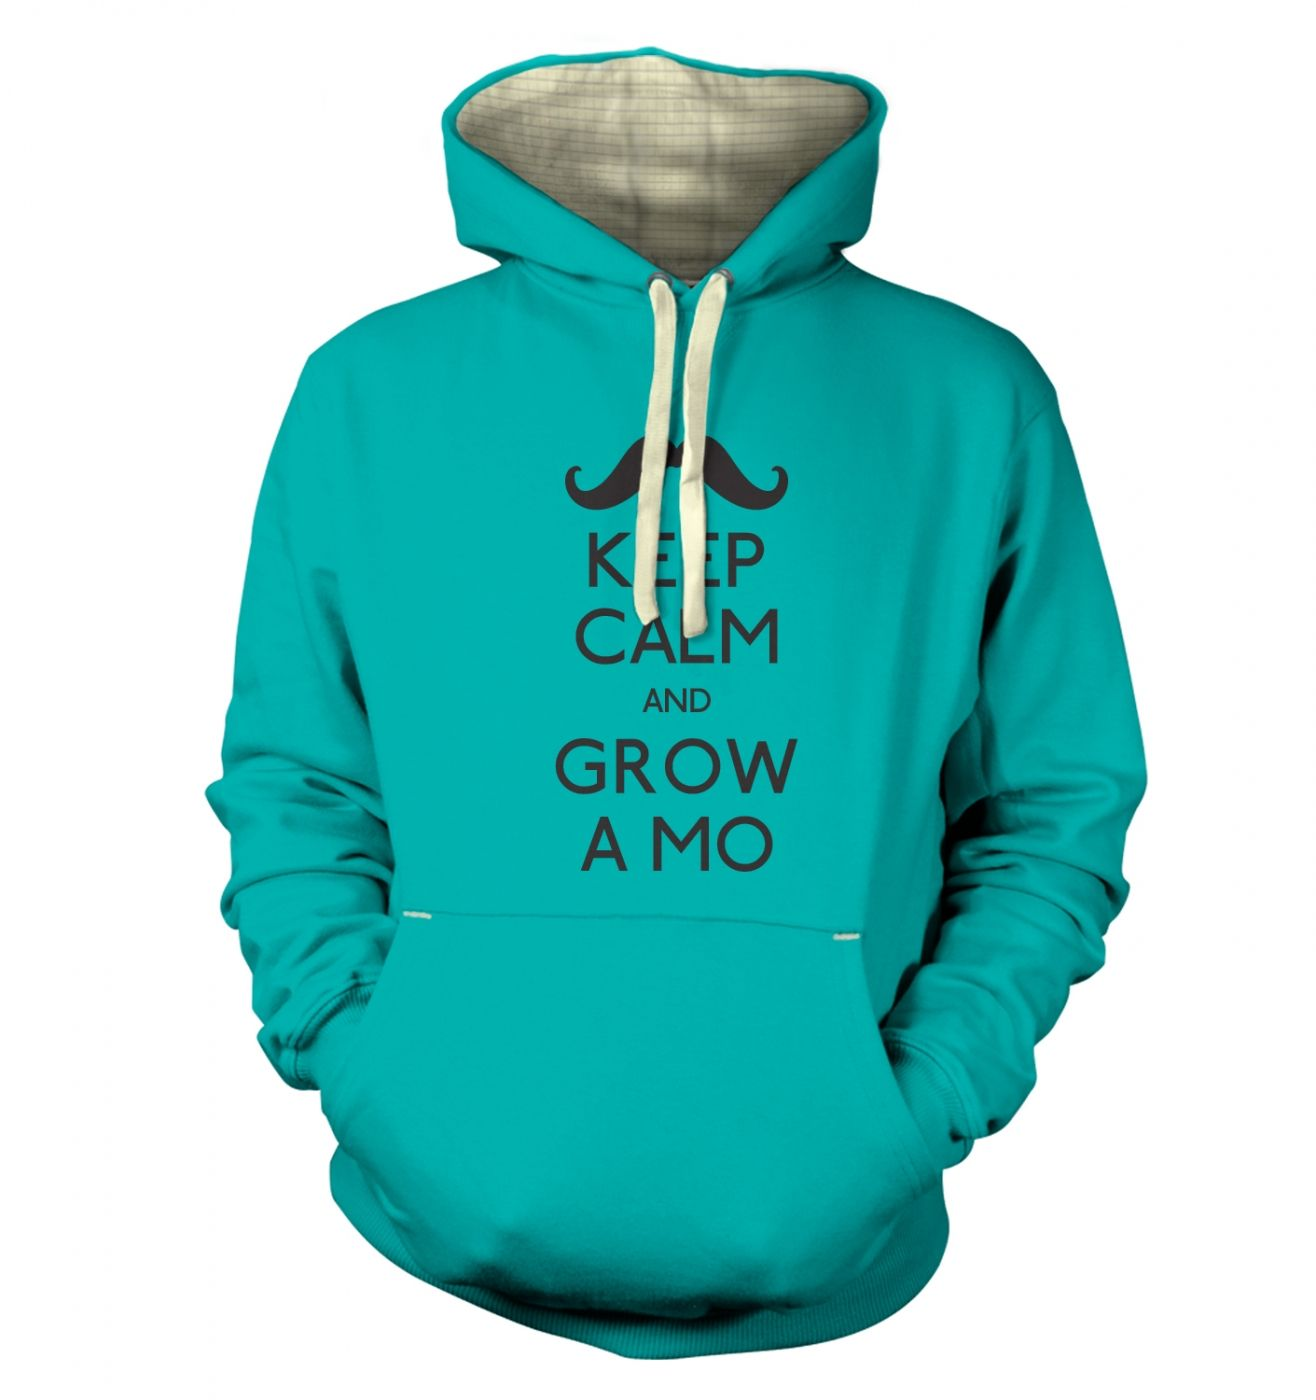 Keep Calm and Grow a Mo hoodie (premium)